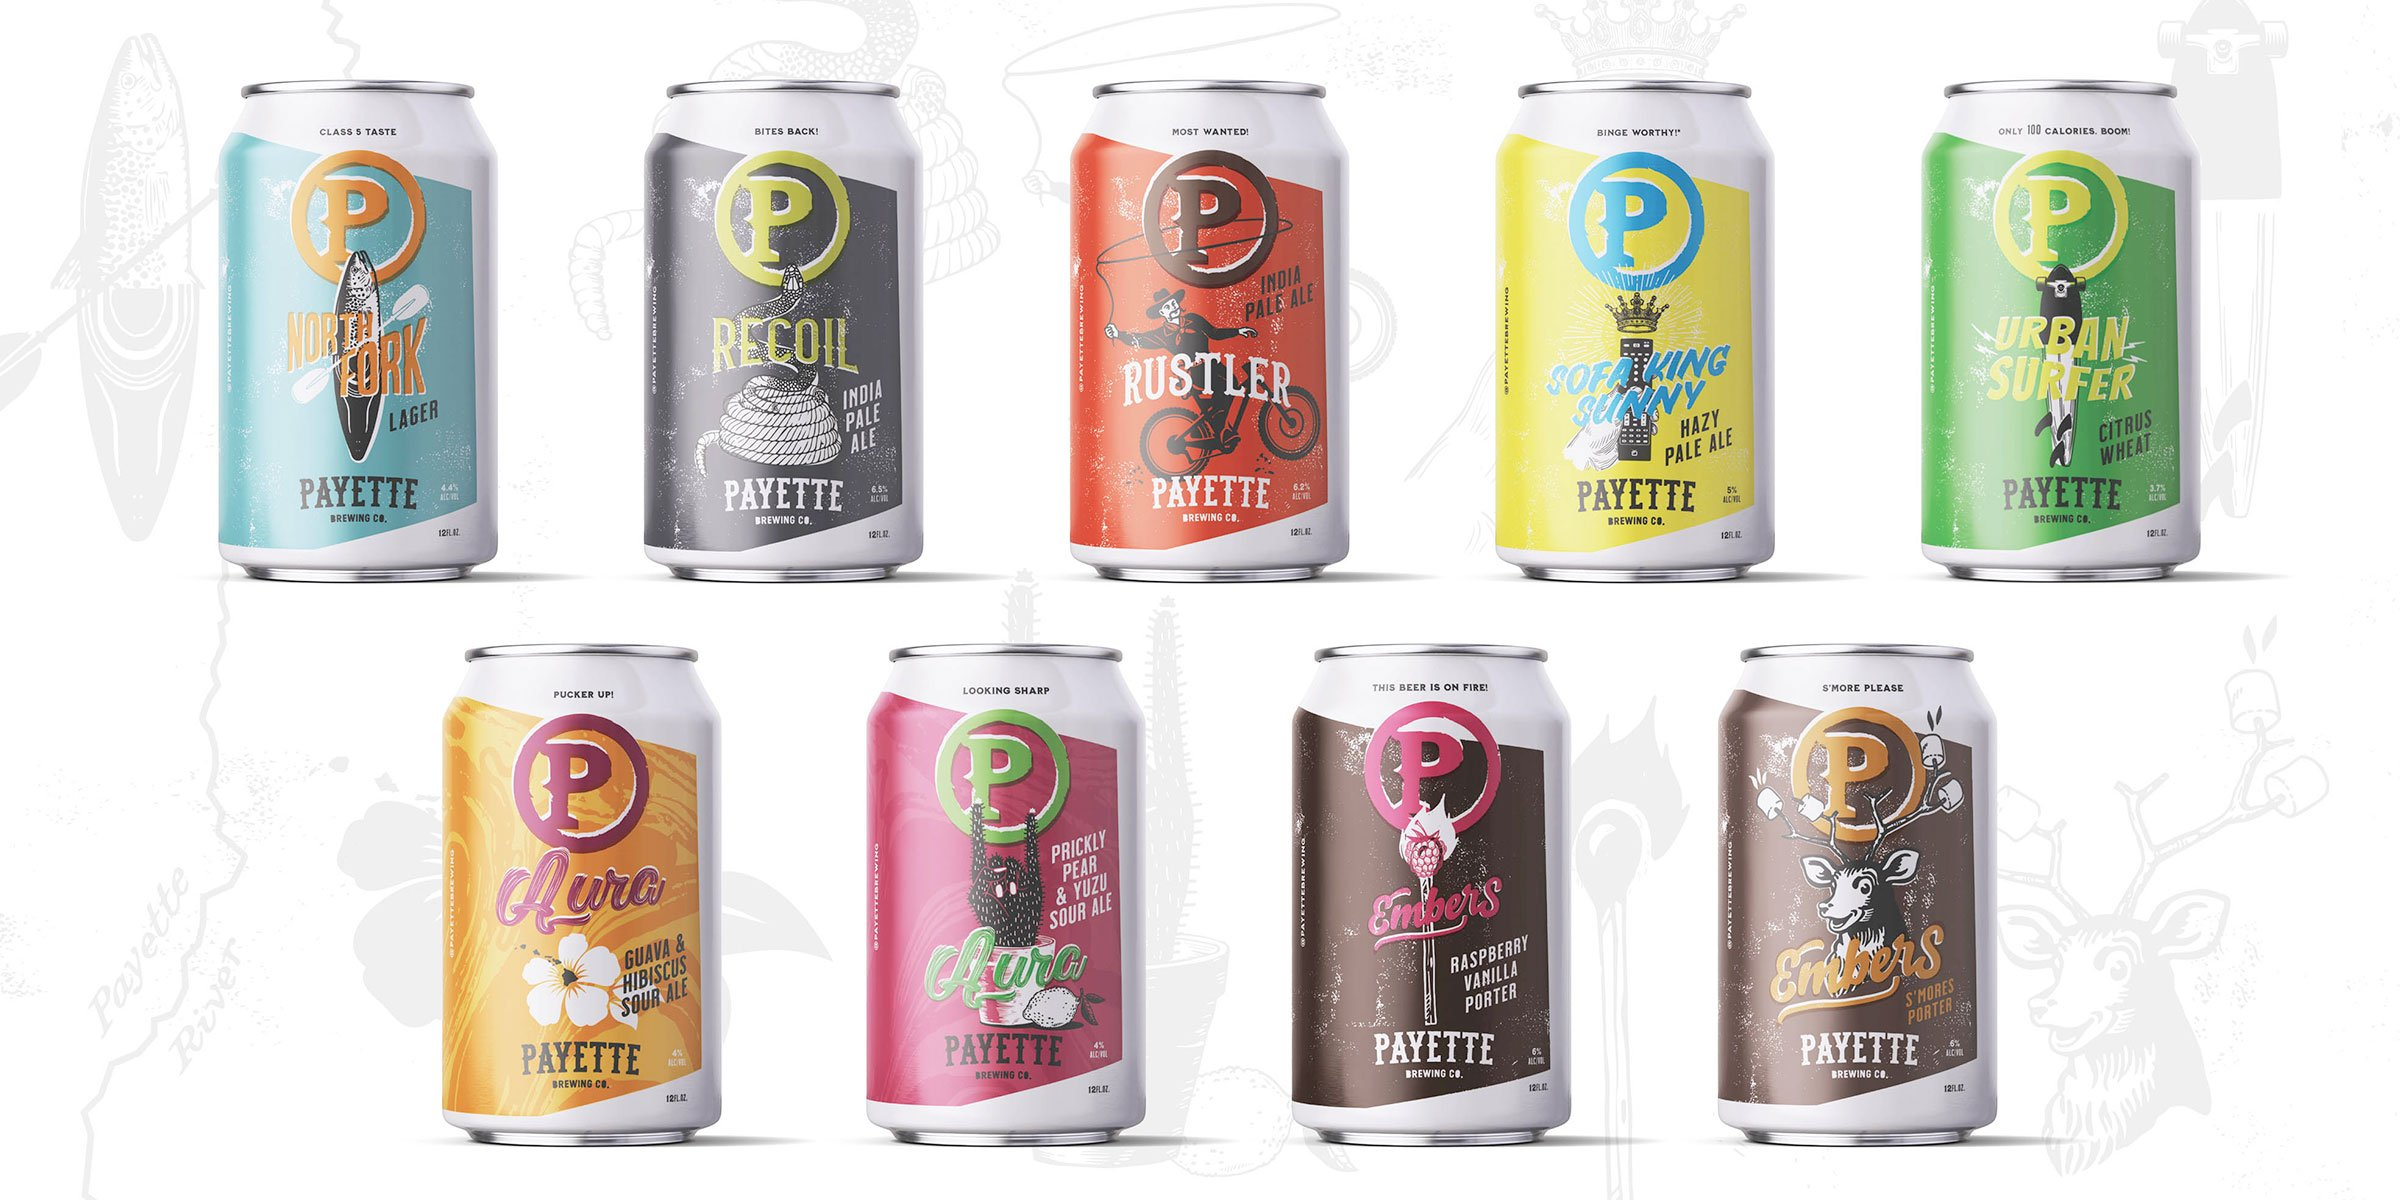 Payette Brewing Company launched a new look of their 12 oz. cans for their lineup of beers.